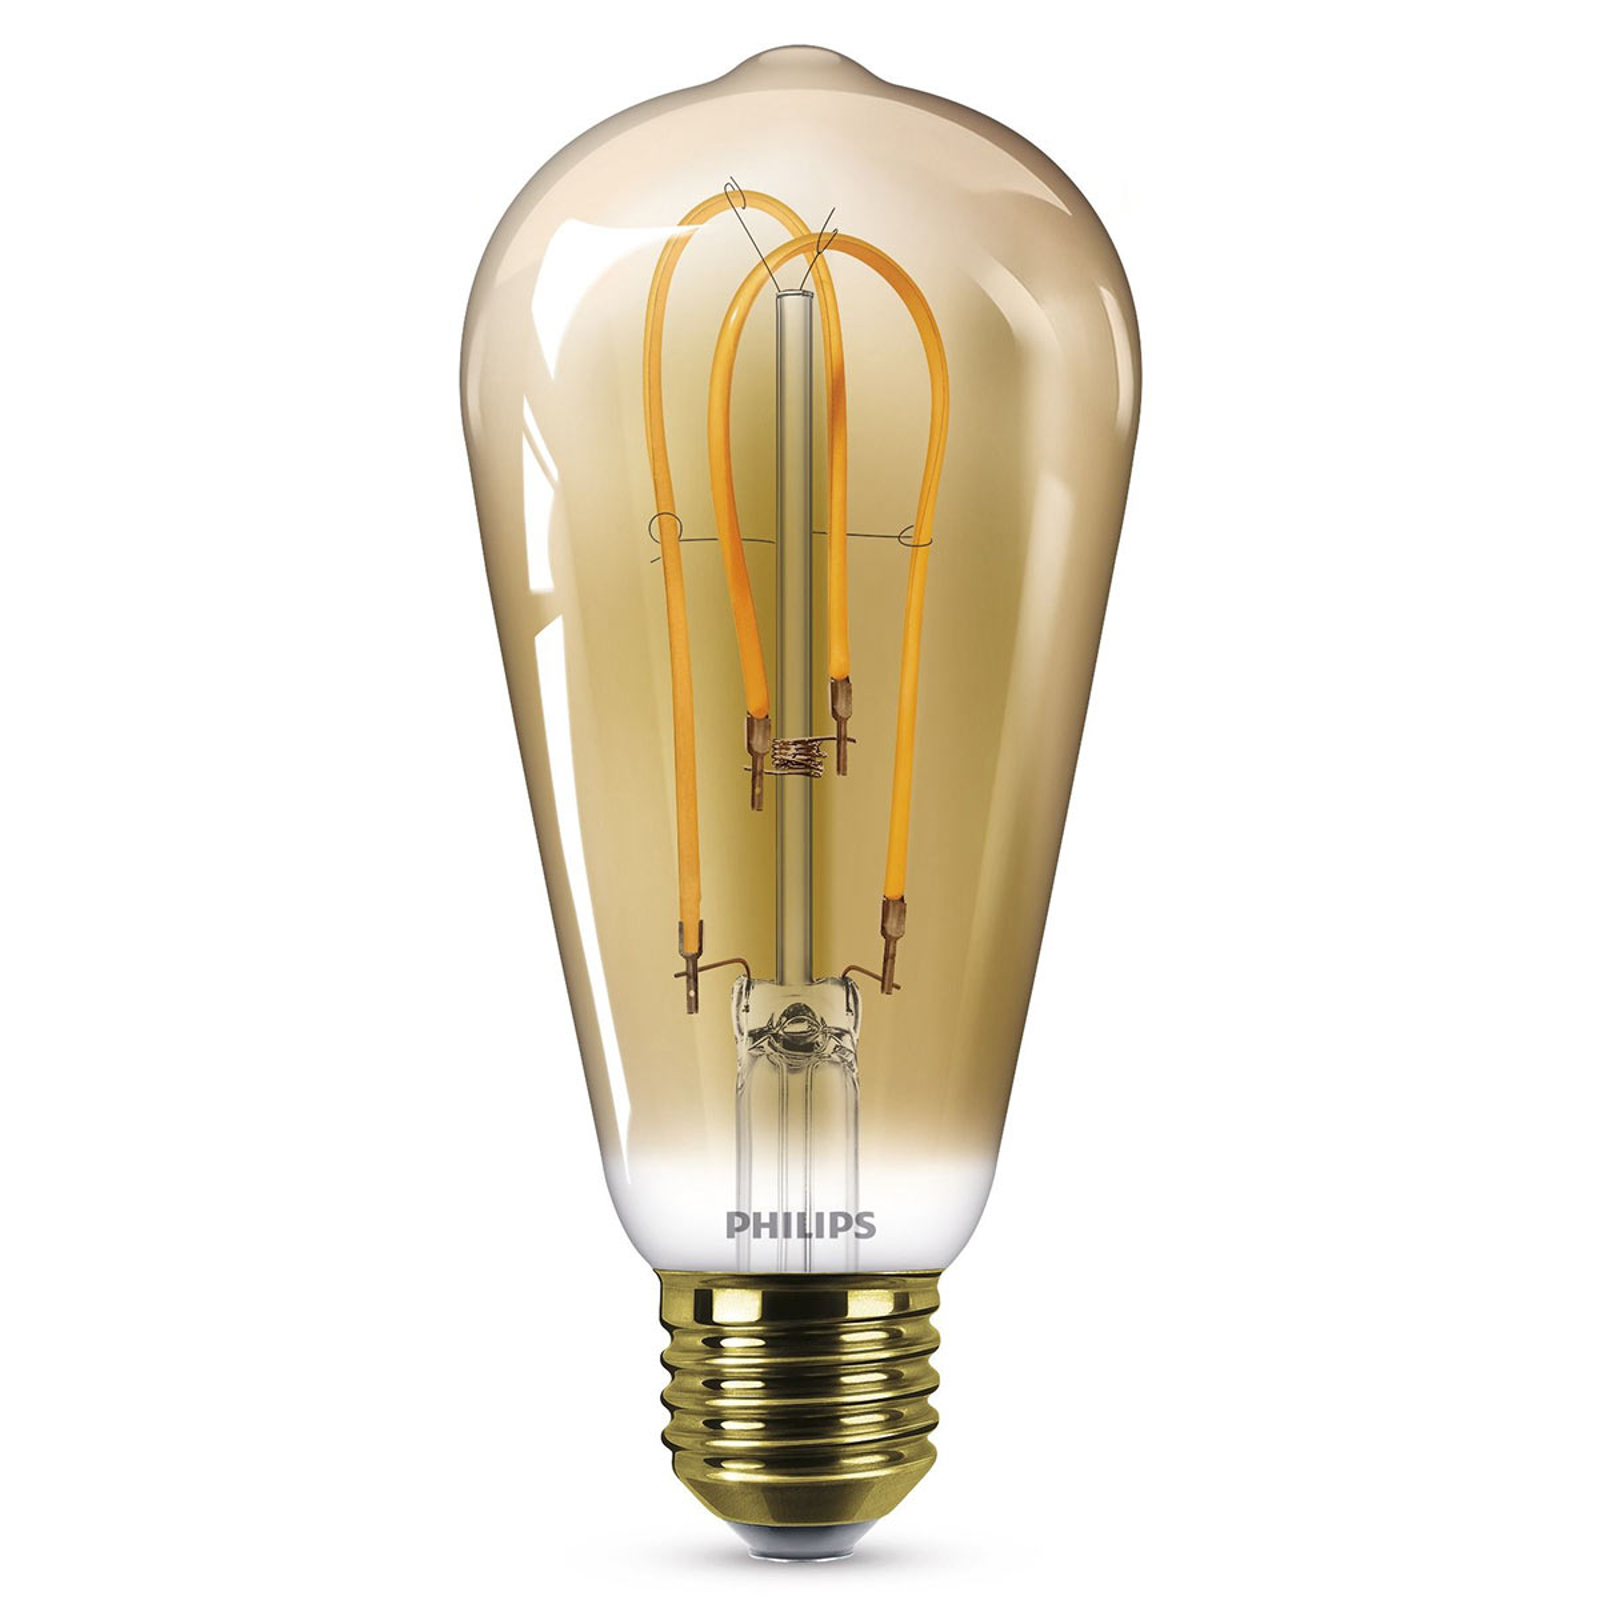 Philips E27 ST64 LED-Lampe Curved 4W 2.500K gold